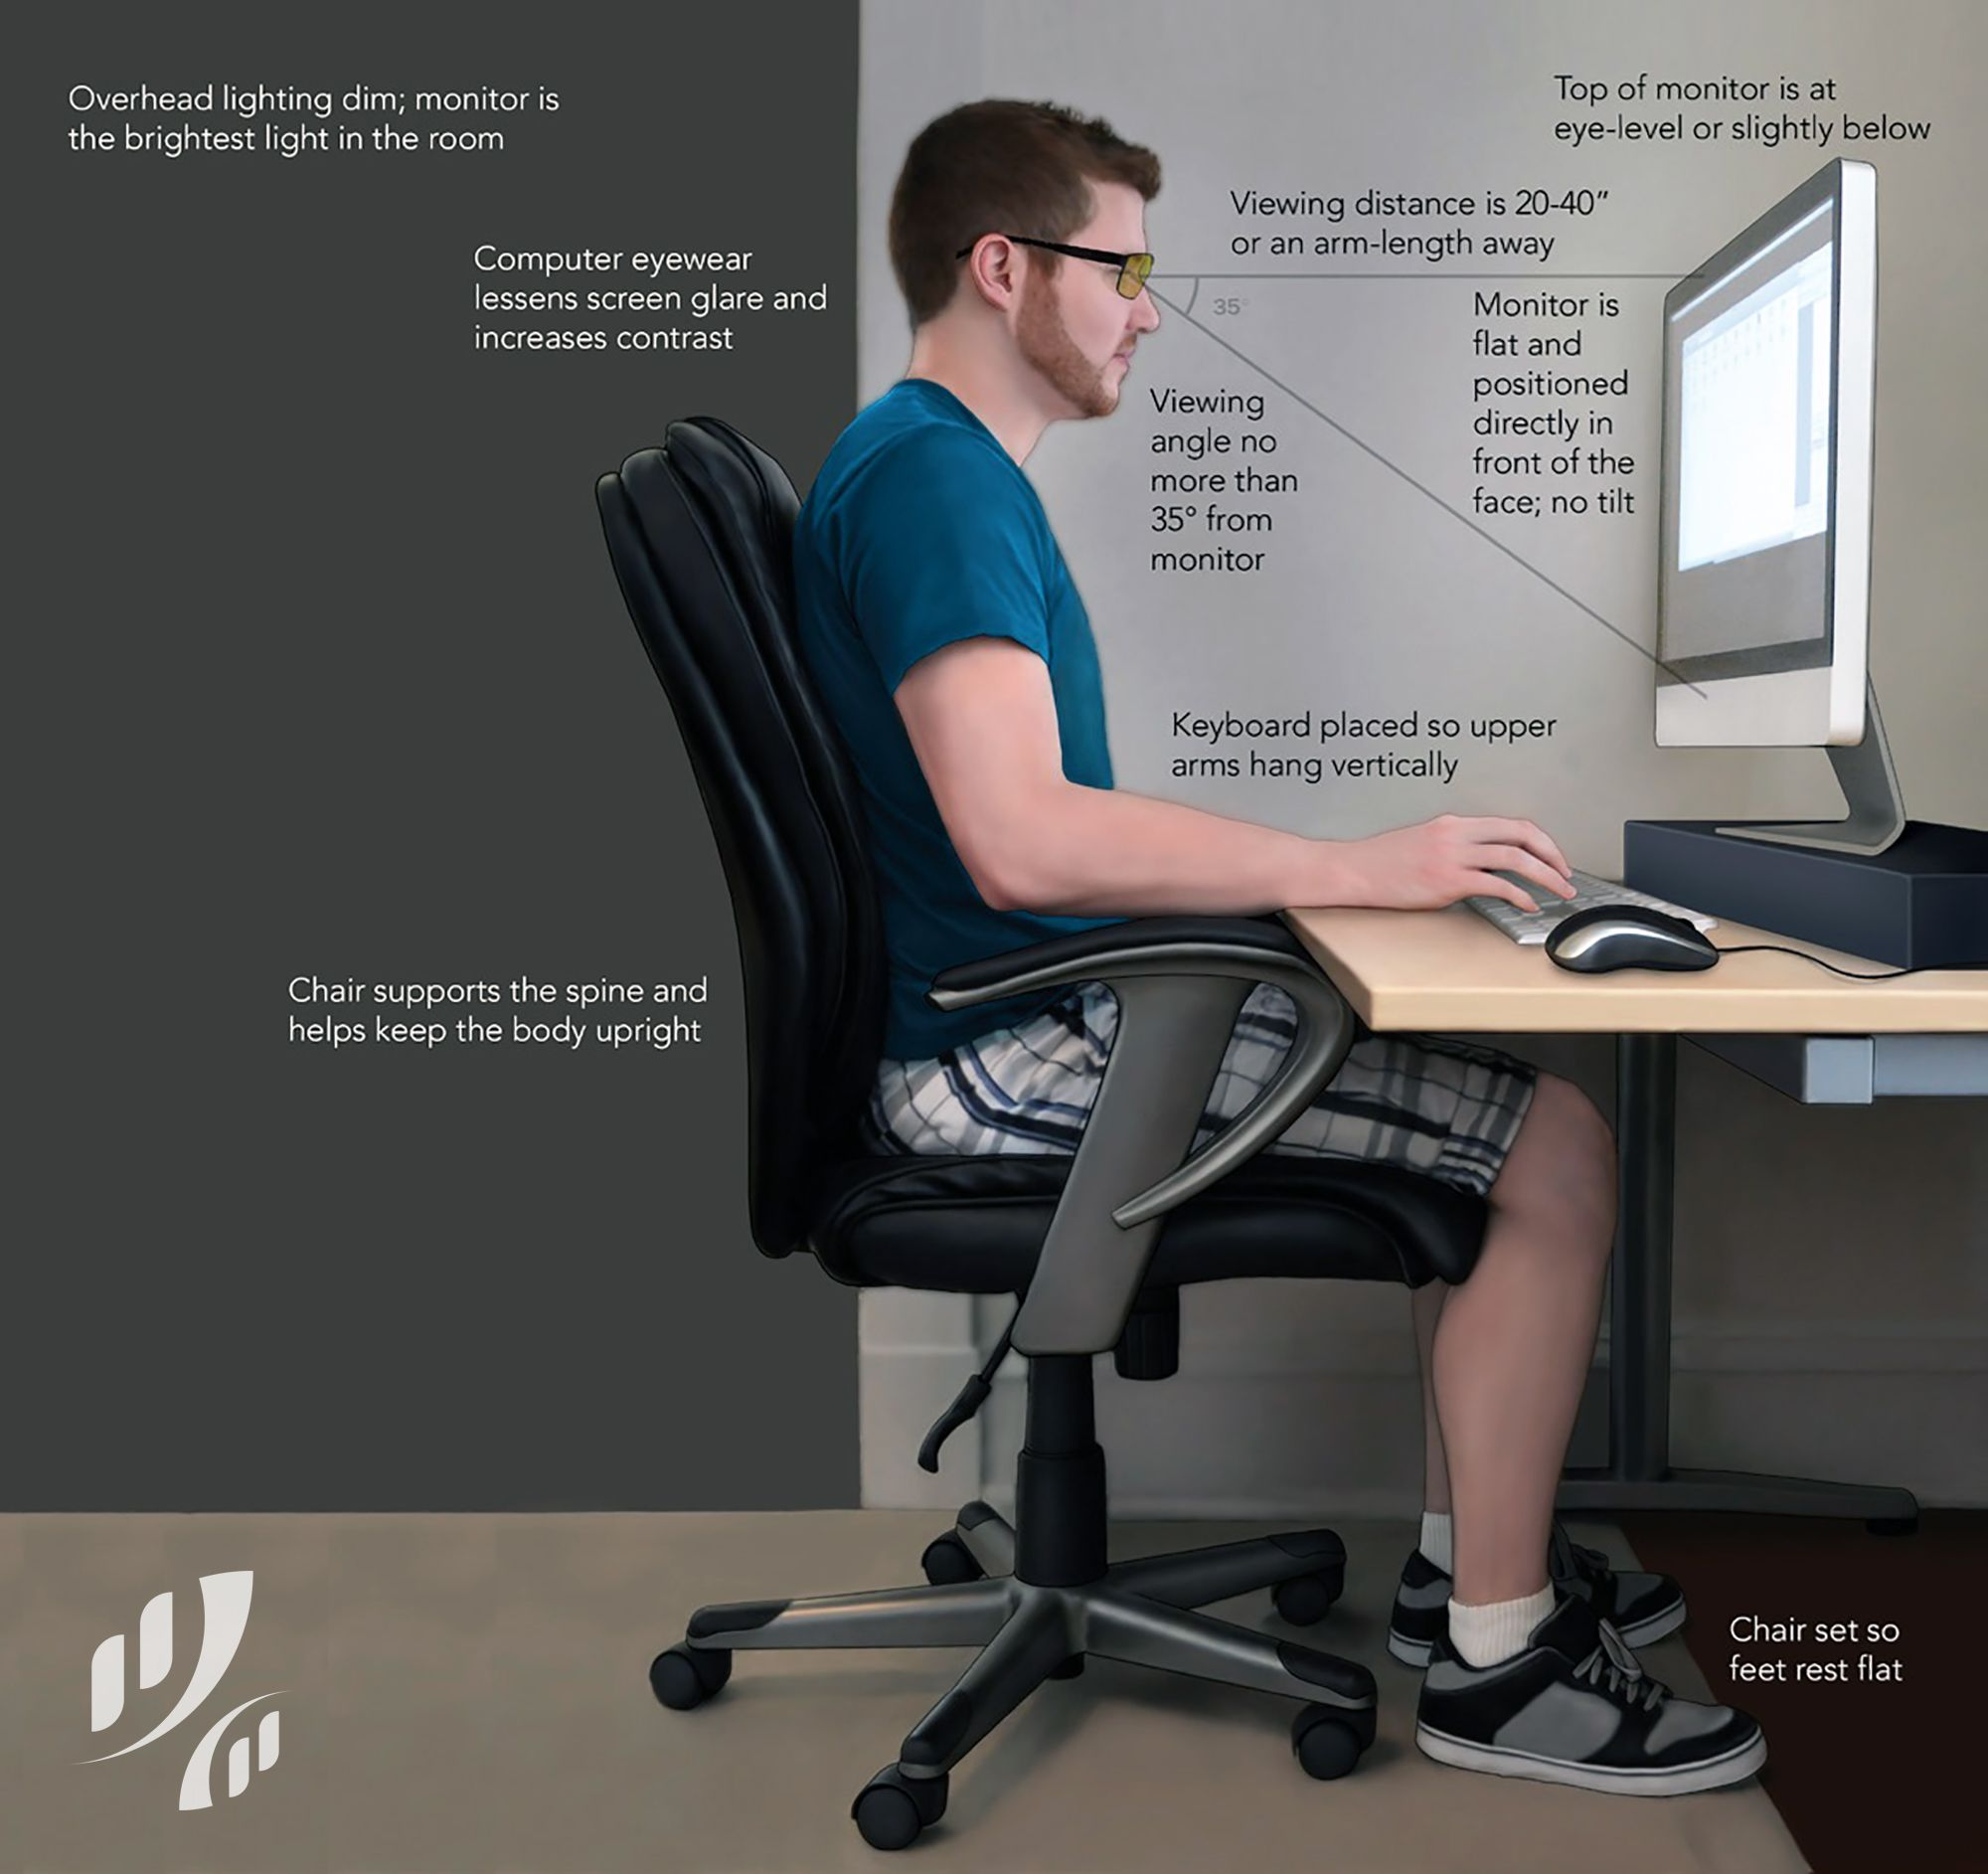 Sitting Position in front of Computer. 🖥posture